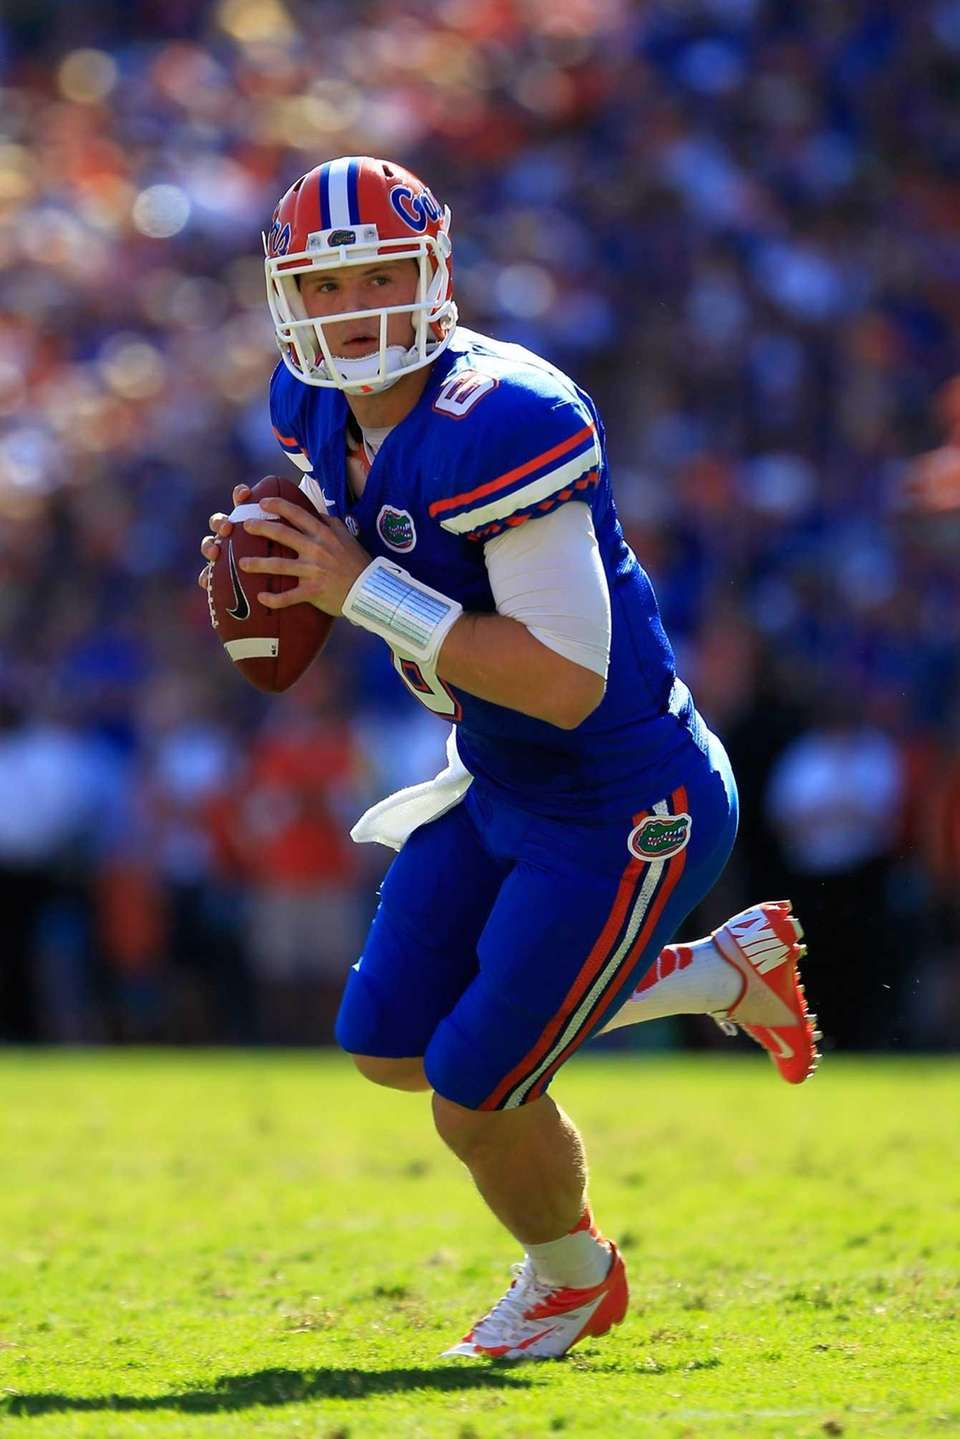 Florida quarterback Jeff Driskel looks to throw the